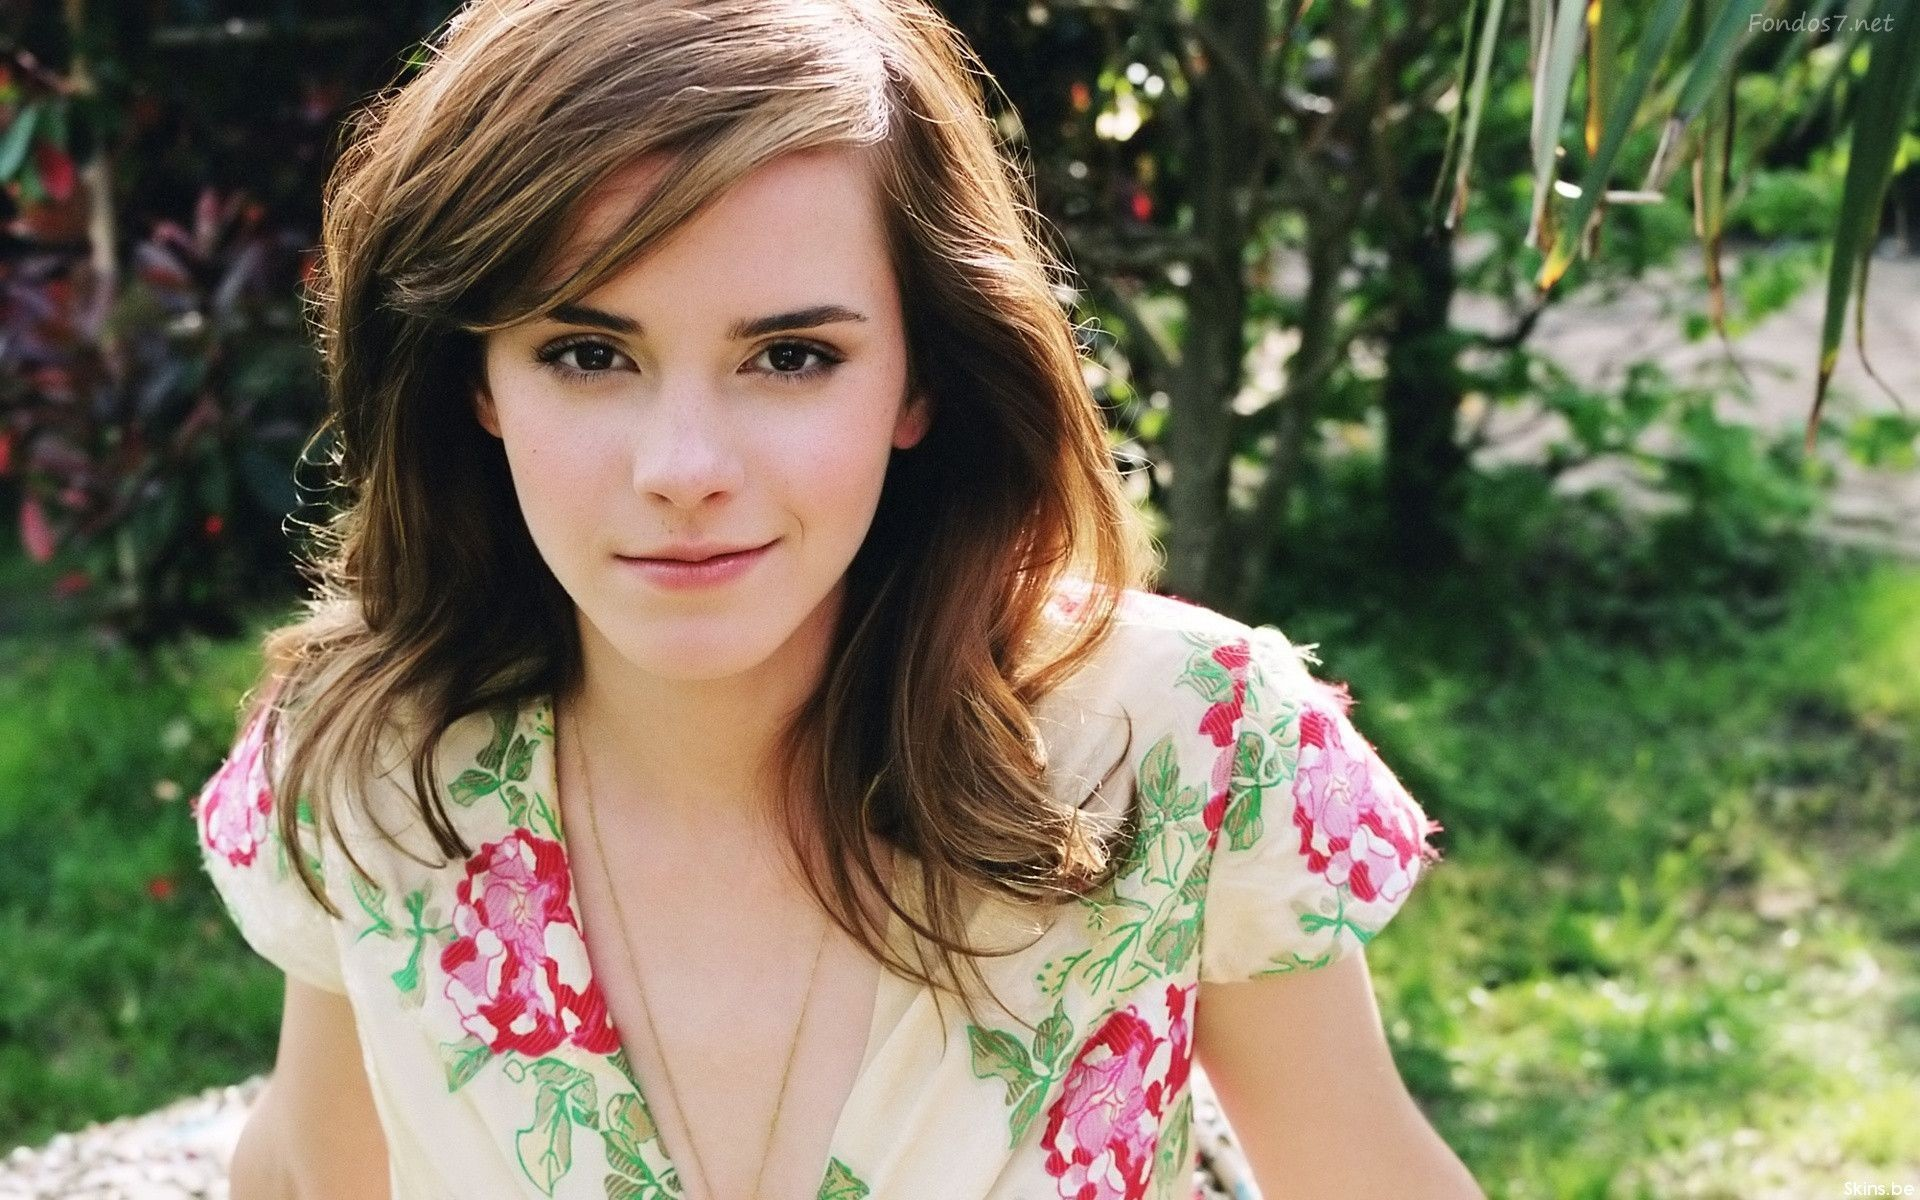 1920x1200 wallpaper.wiki-Emma-Watson-HD-Wallpaper-PIC-WPE006620